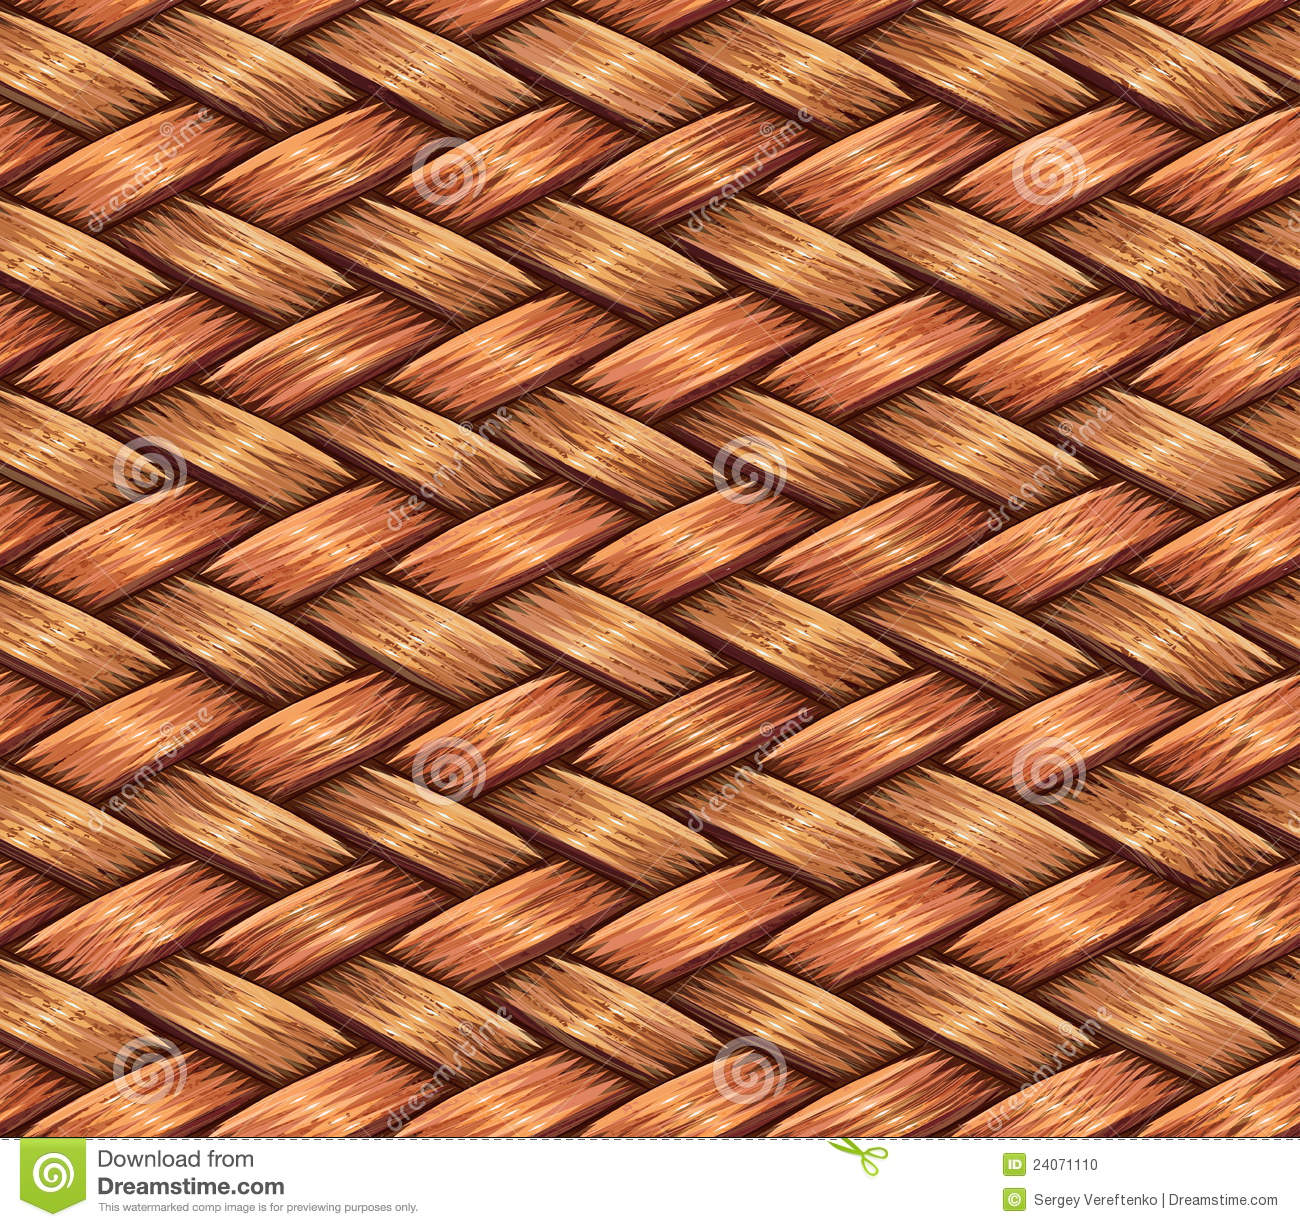 Wooden Weaving Stock Photo Image 24071110